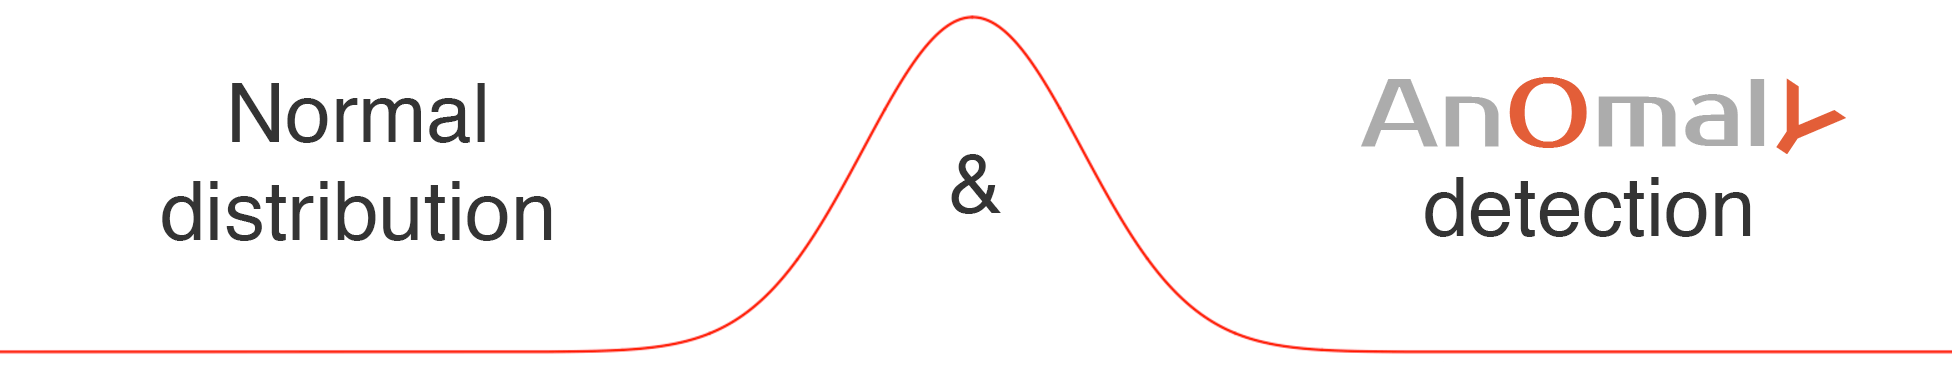 anomaly in normal distribution